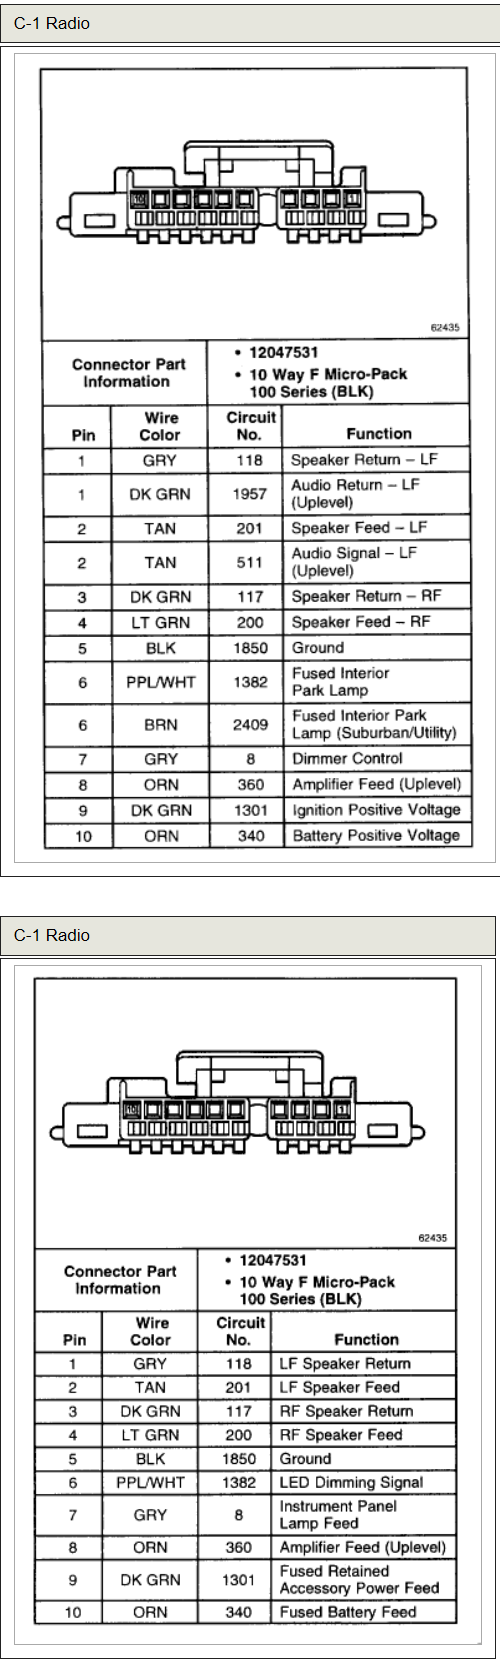 Chevrolet Car Radio Stereo Audio Wiring Diagram Autoradio Connector Trailblazer Fuse Box Wire Installation Schematic Schema Esquema De Conexiones Anschlusskammern Konektor